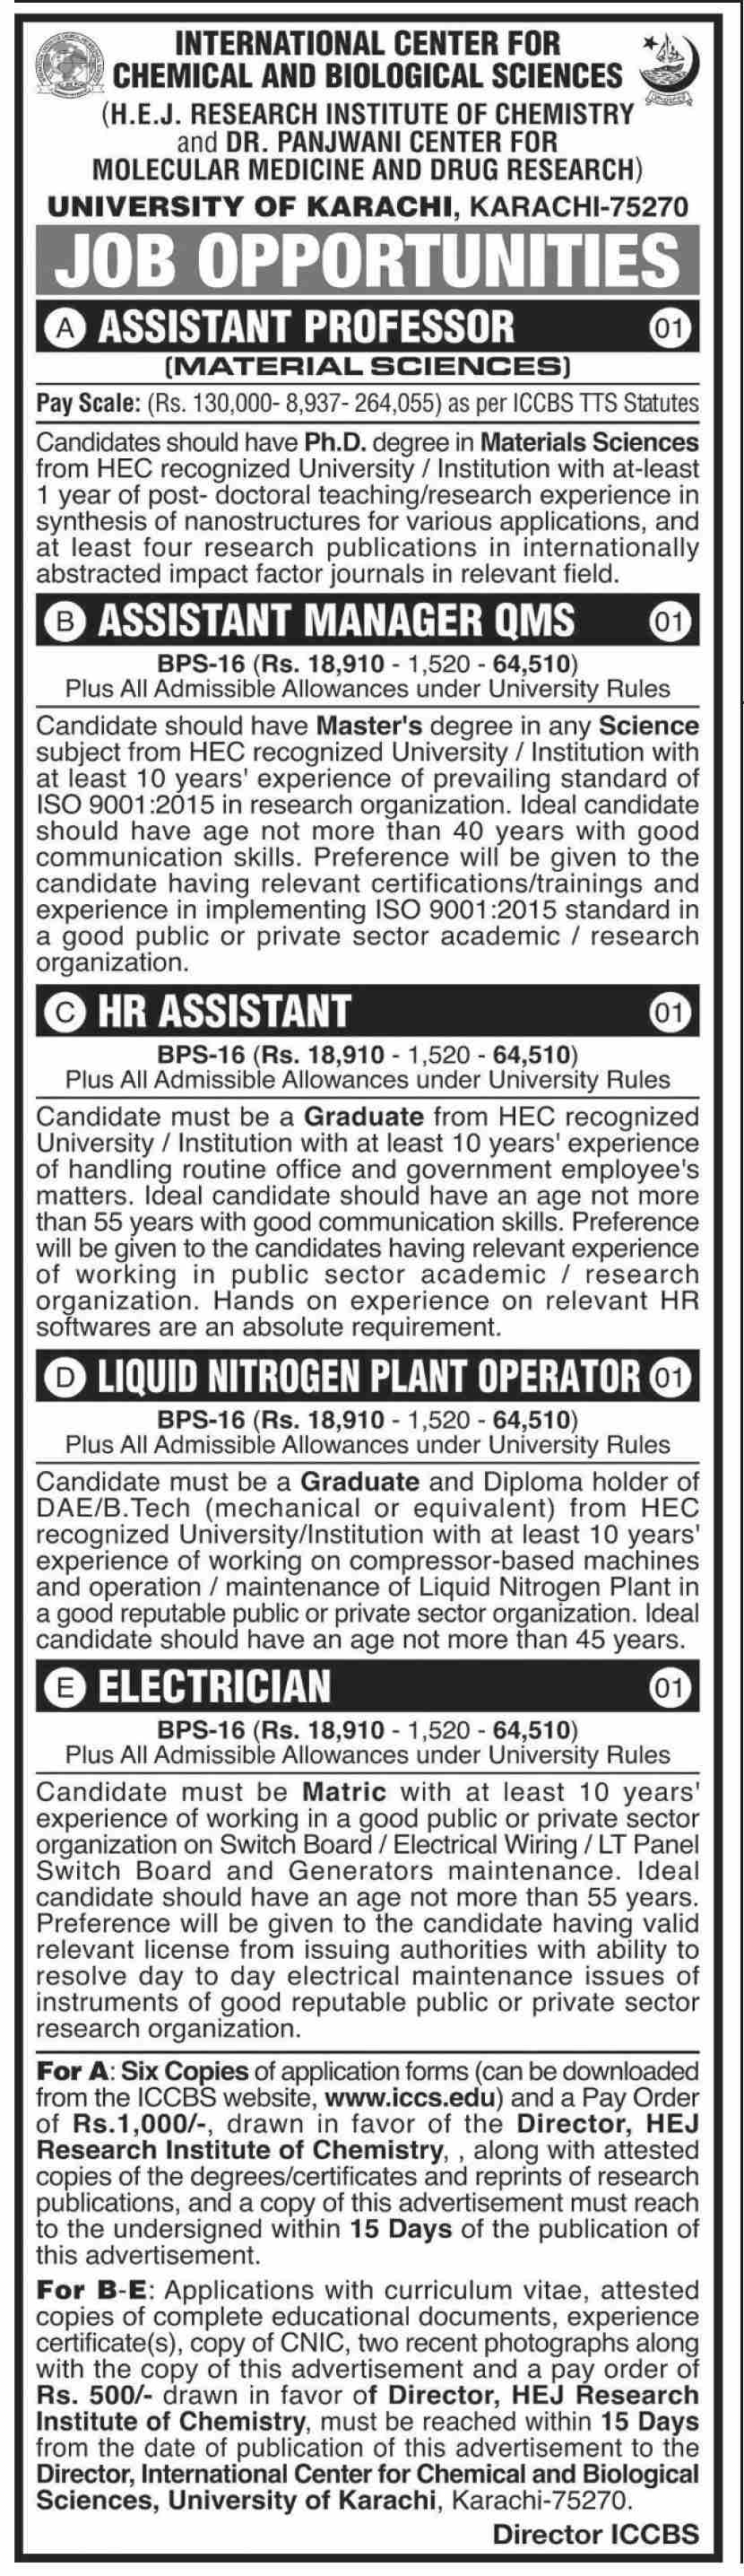 International Center For Chemical & Biological Sciences jobs newspaper ad for Assistant Professor in Karachi on 2021-02-23